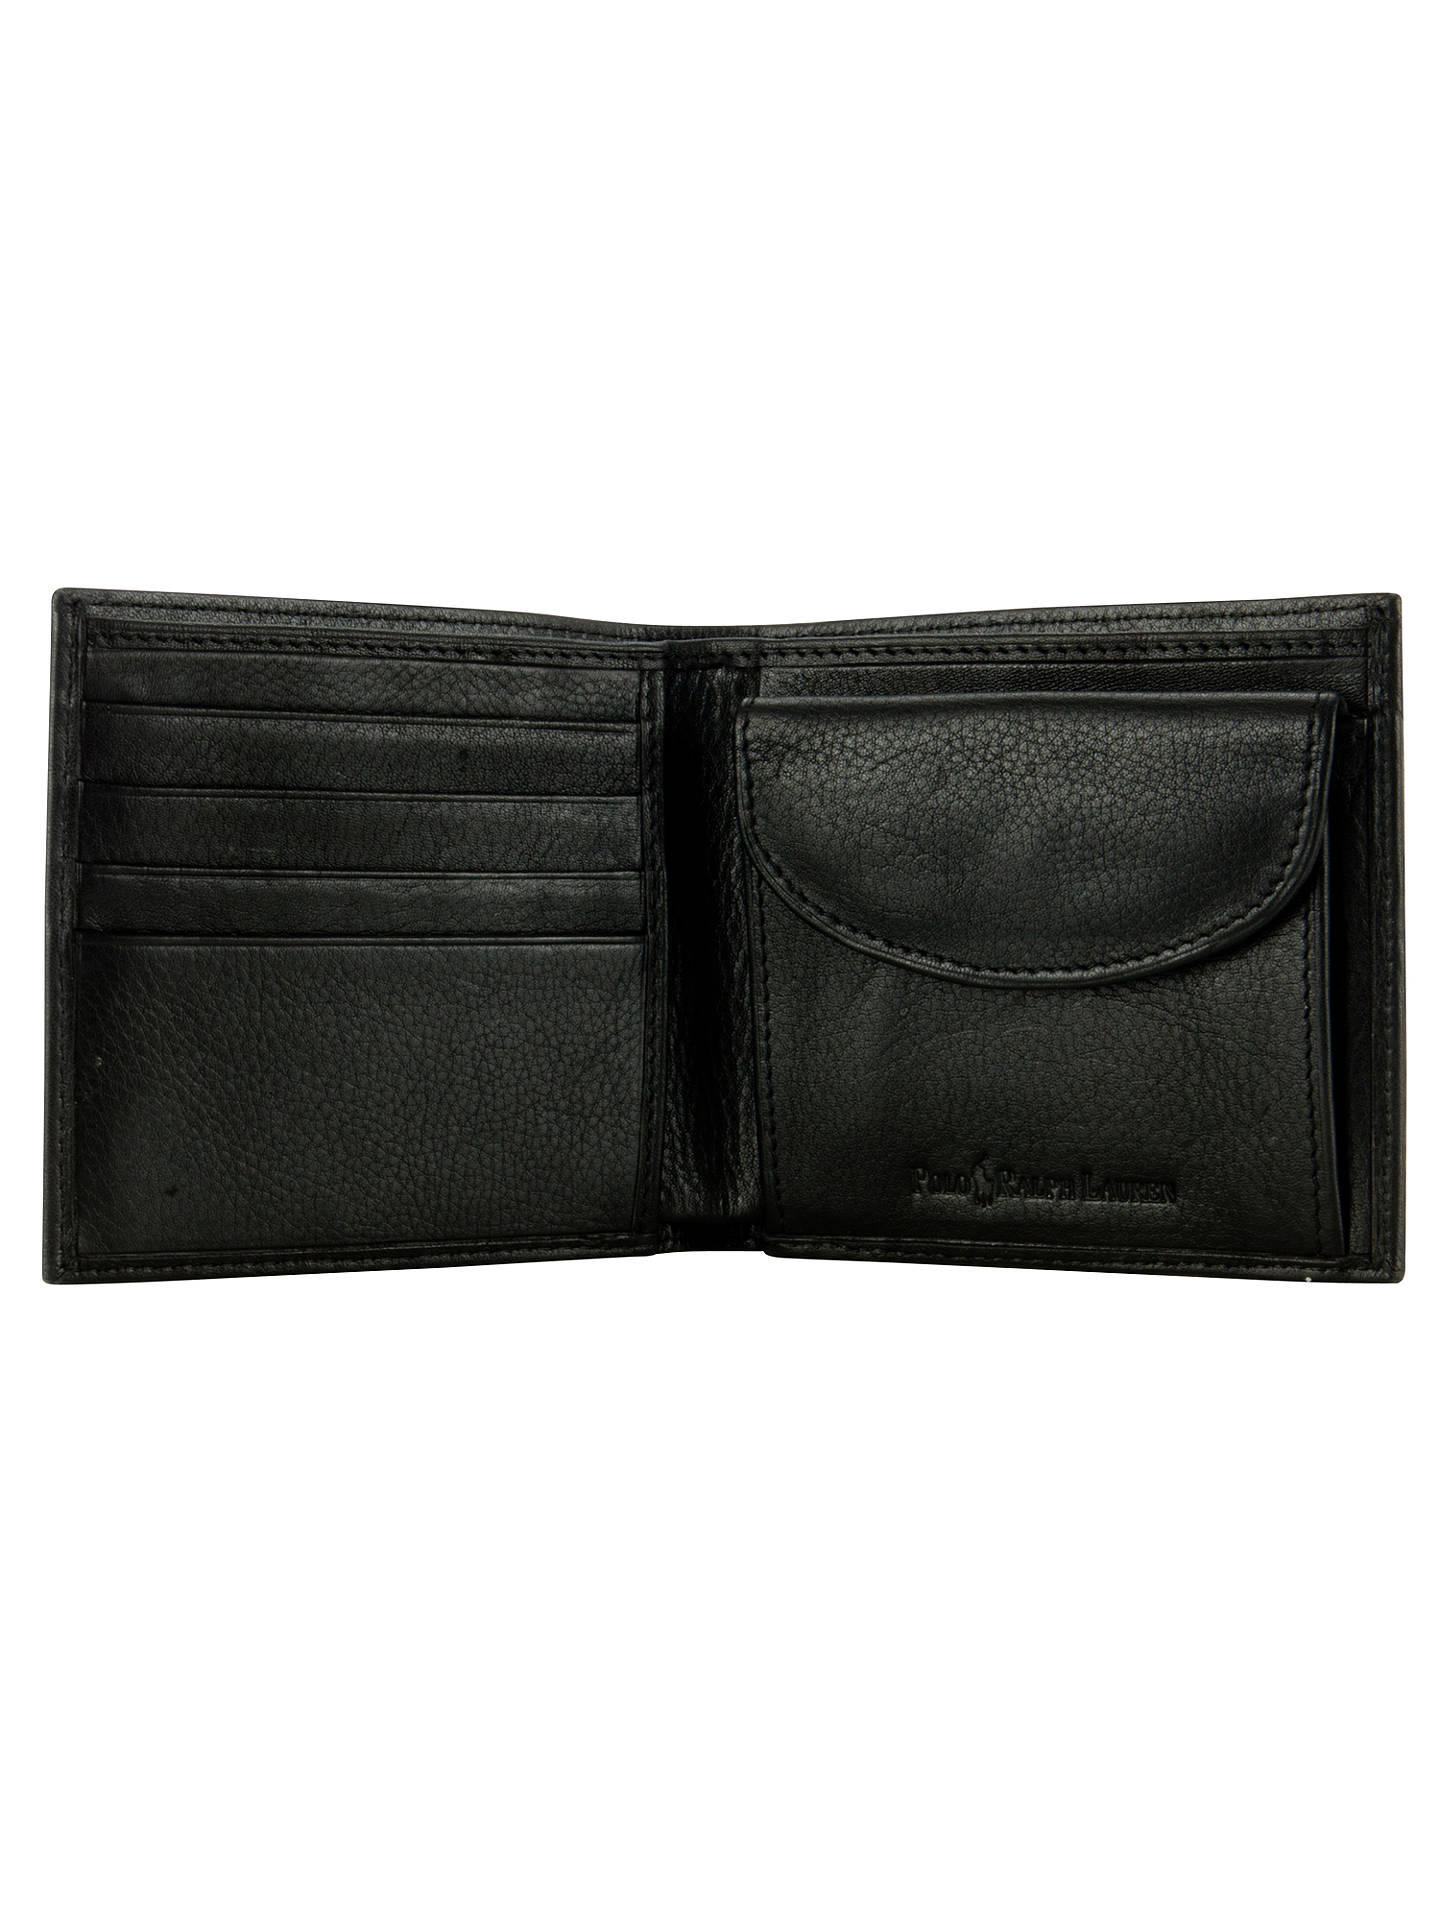 BuyPolo Ralph Lauren Pebble Leather Wallet, Black Online at johnlewis.com